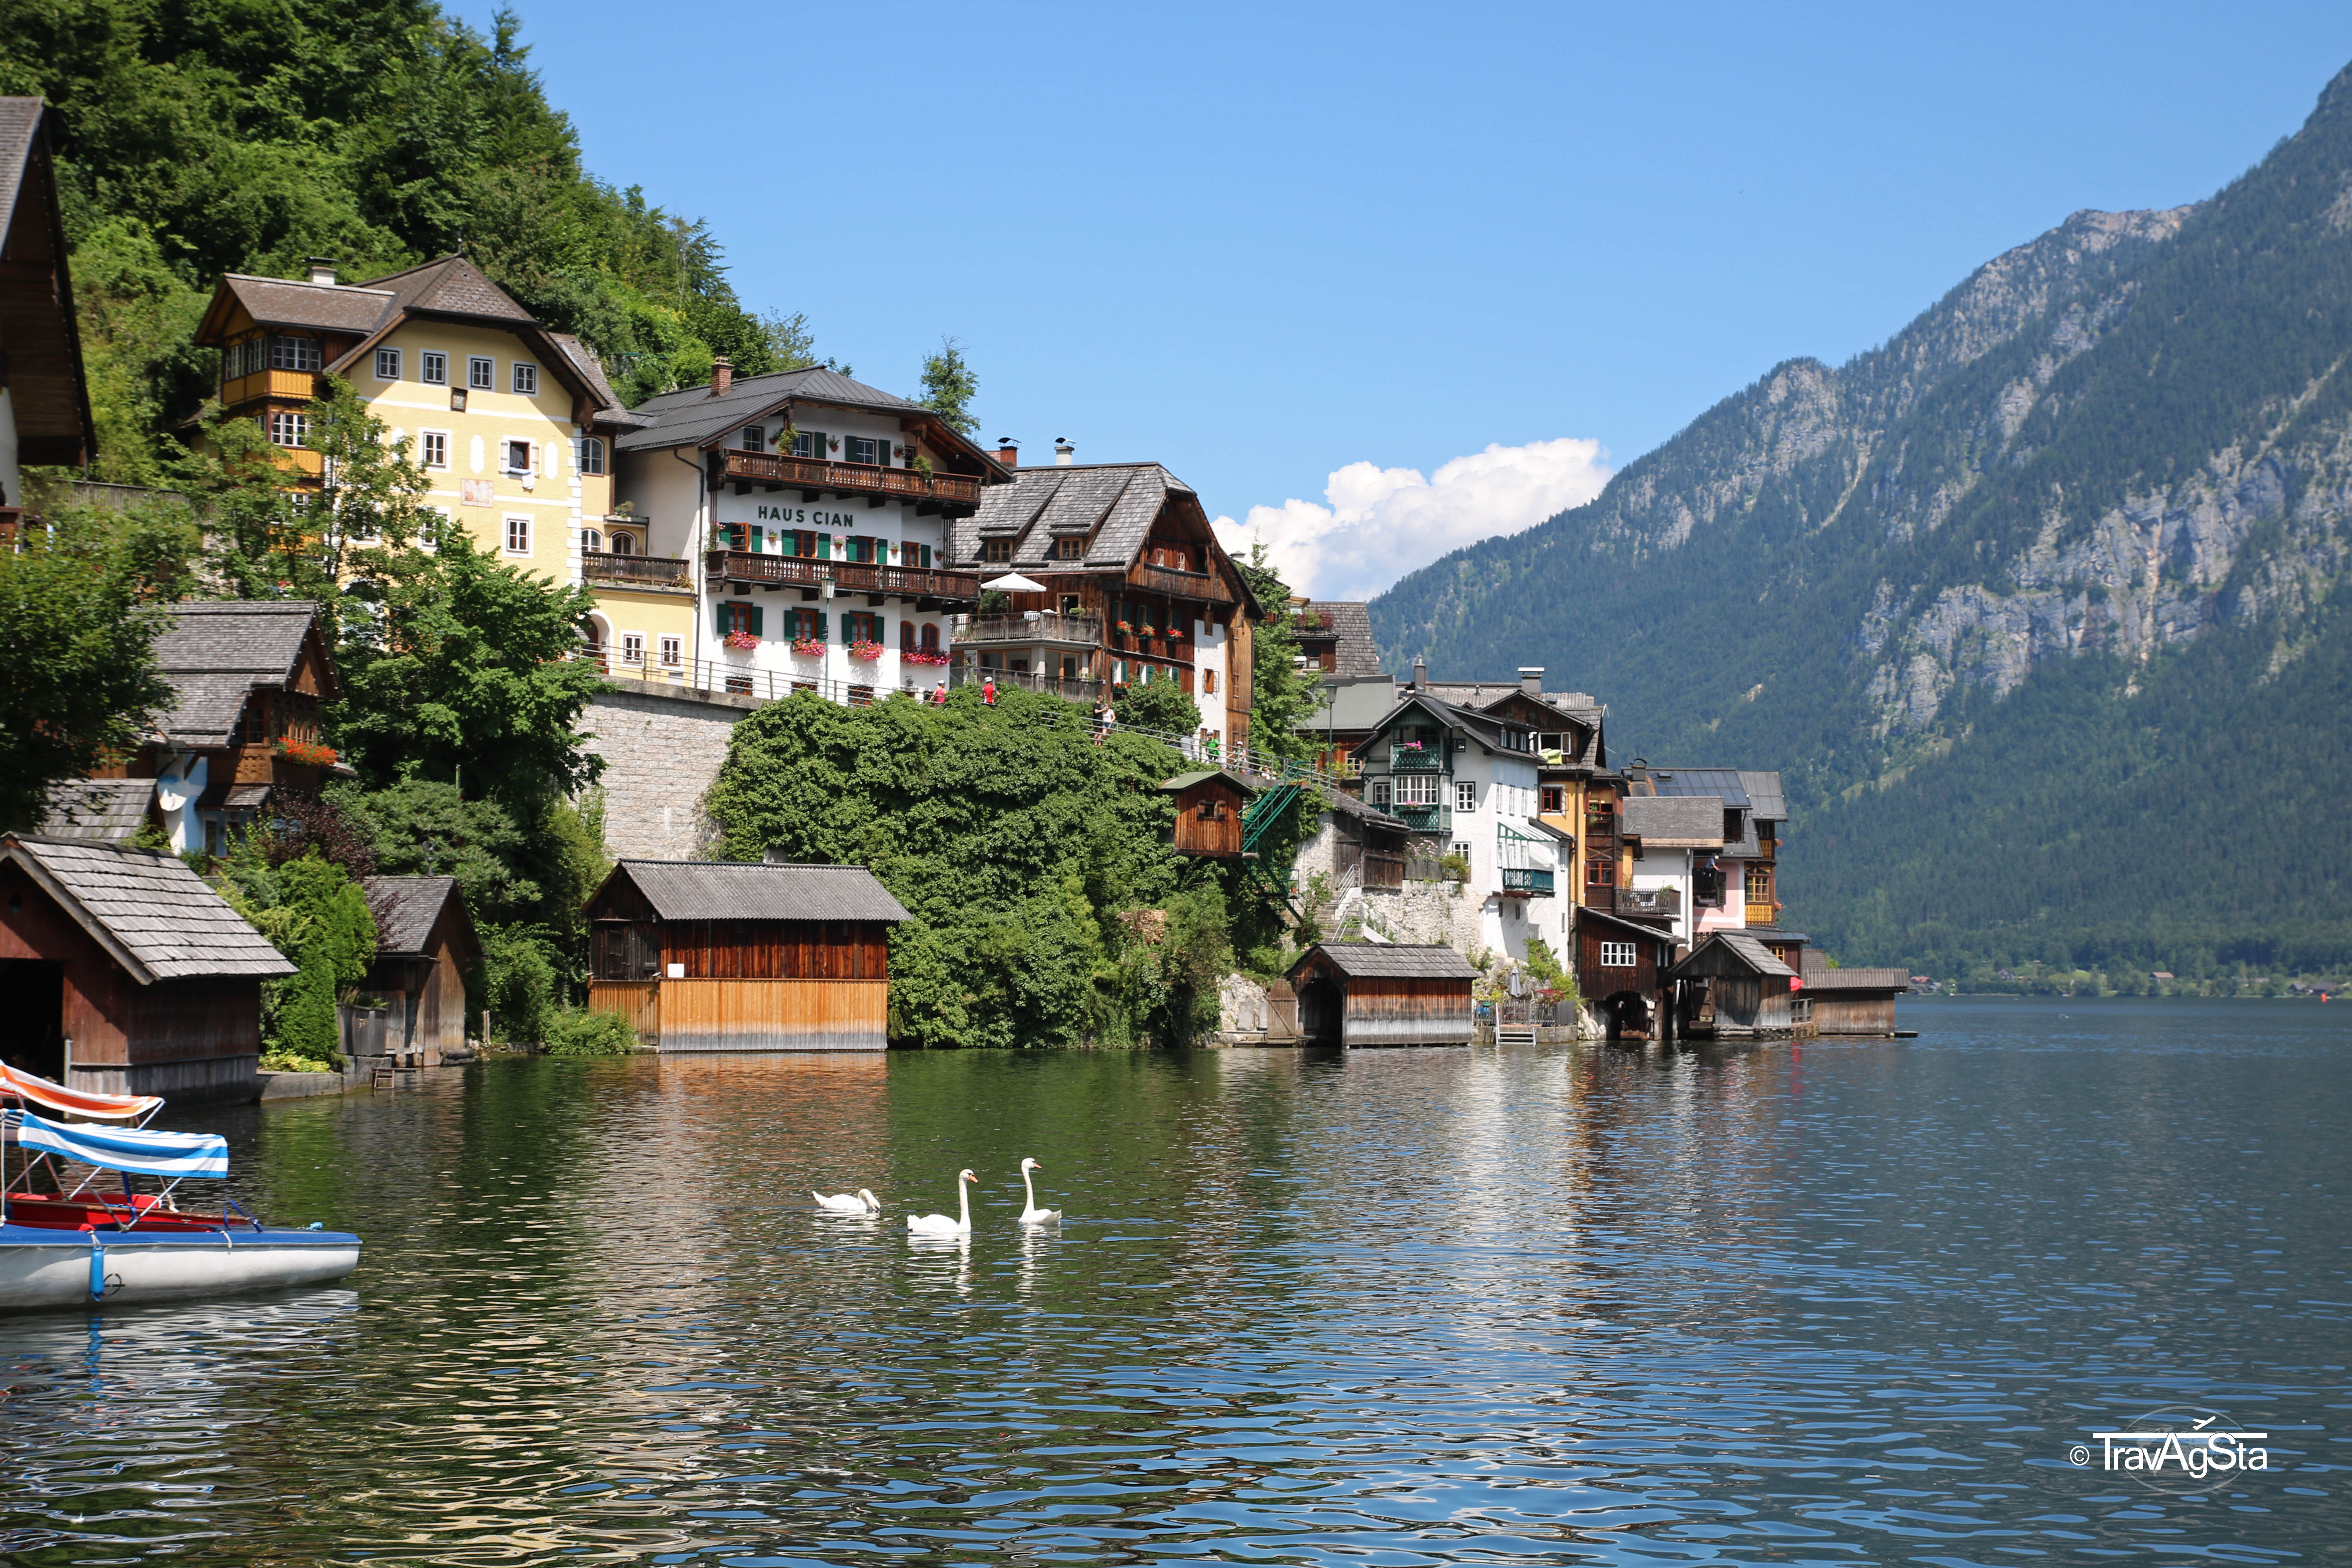 Bad Hallstatt U2013 Fairytale Town on places that are straight out of fairy tales